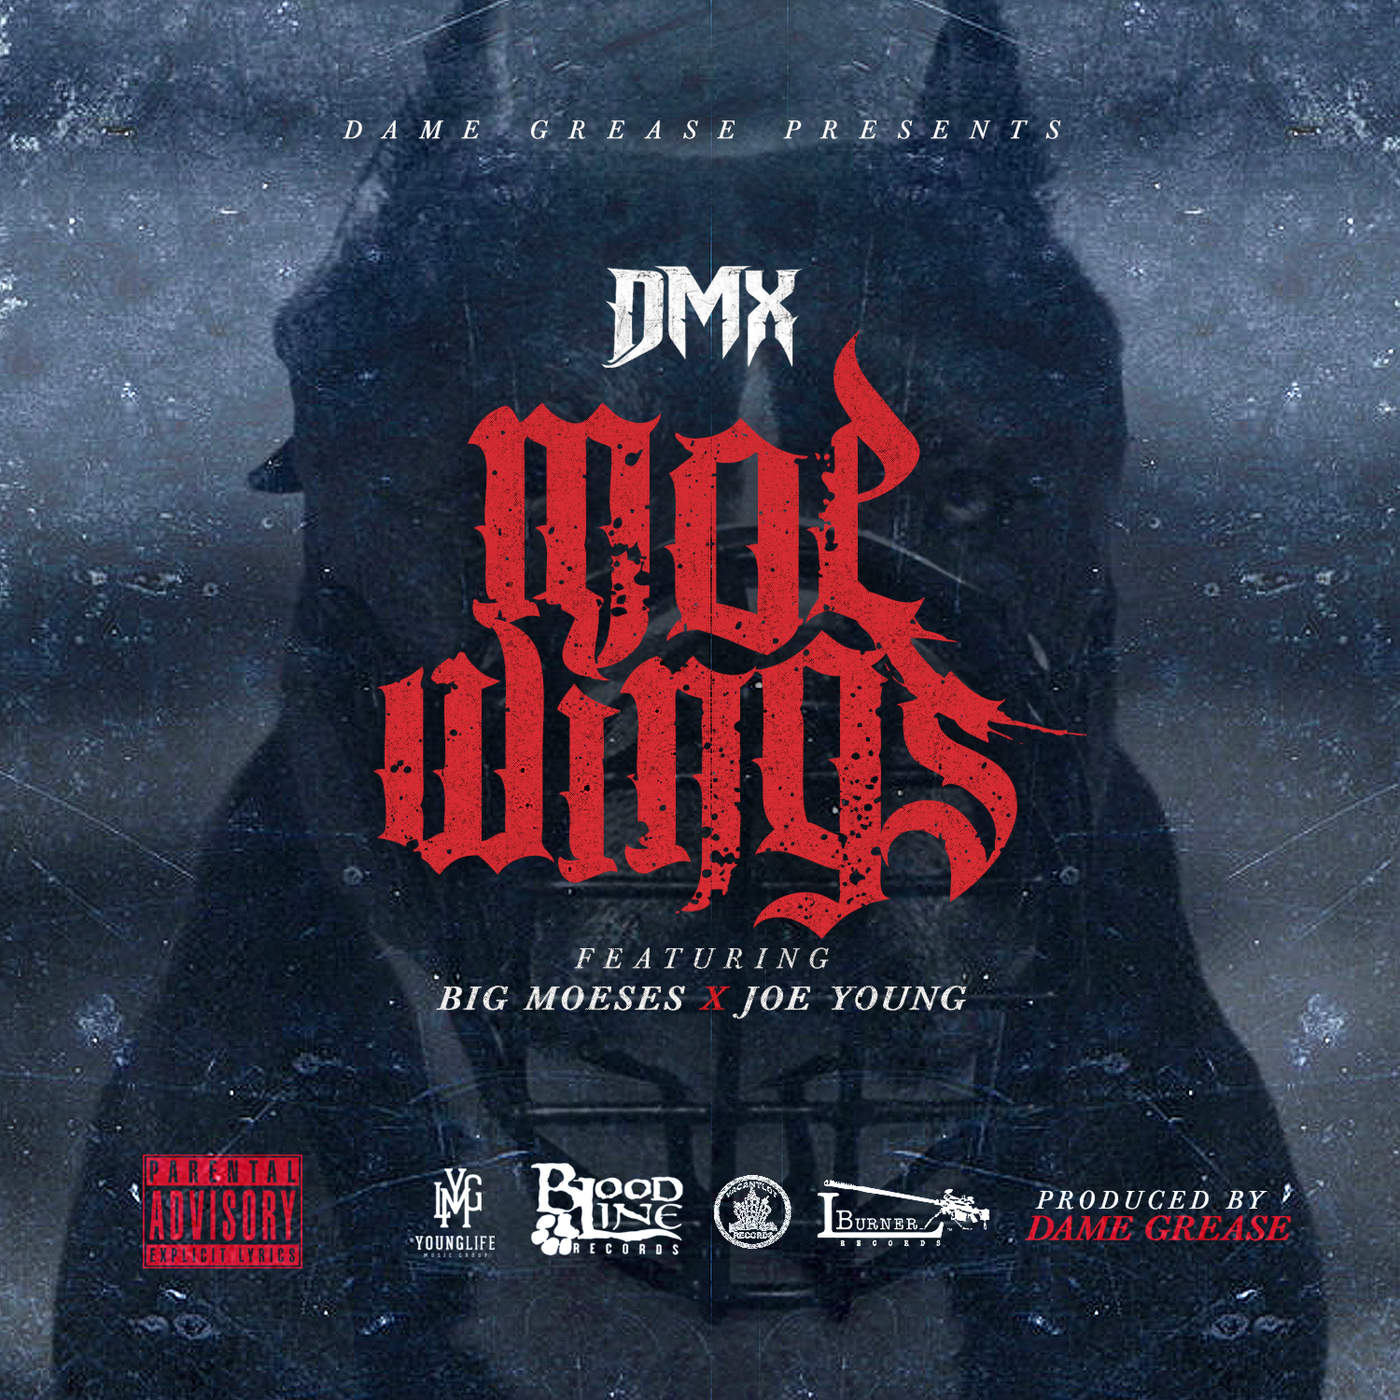 DMX - Moe Wings (feat. Big Moeses & Joe Young) - Single Cover